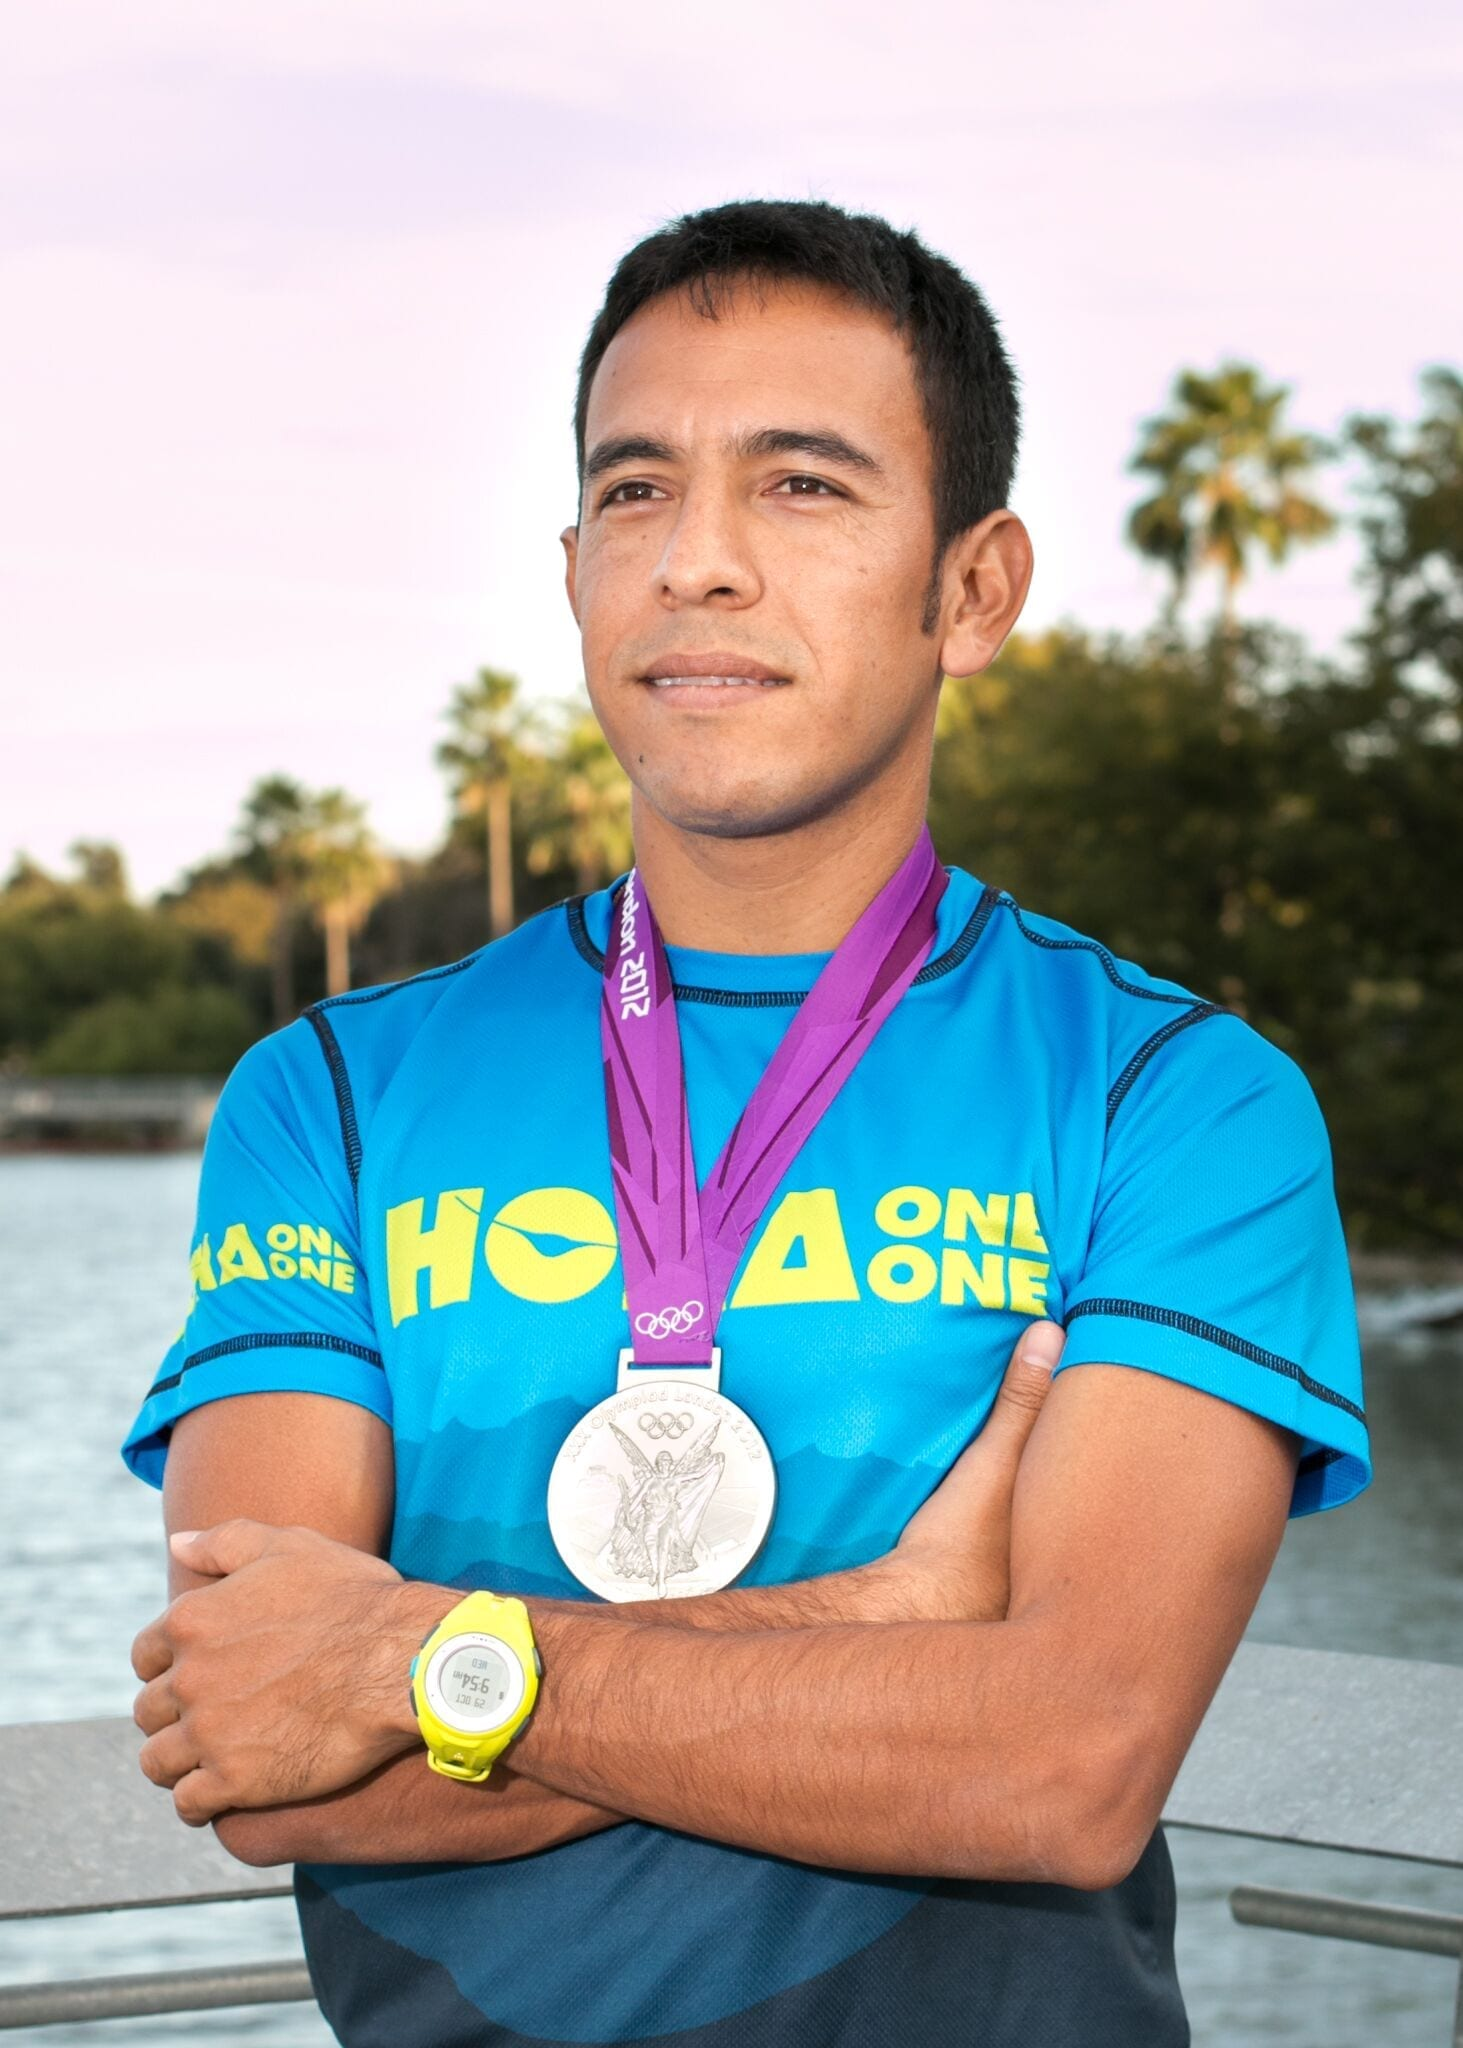 Leo Manzano, Austin Marathon Race Ambassador, poses with his Olympic silver medal. Manzano takes you back to his first sub-four-minute mile in this blog post.